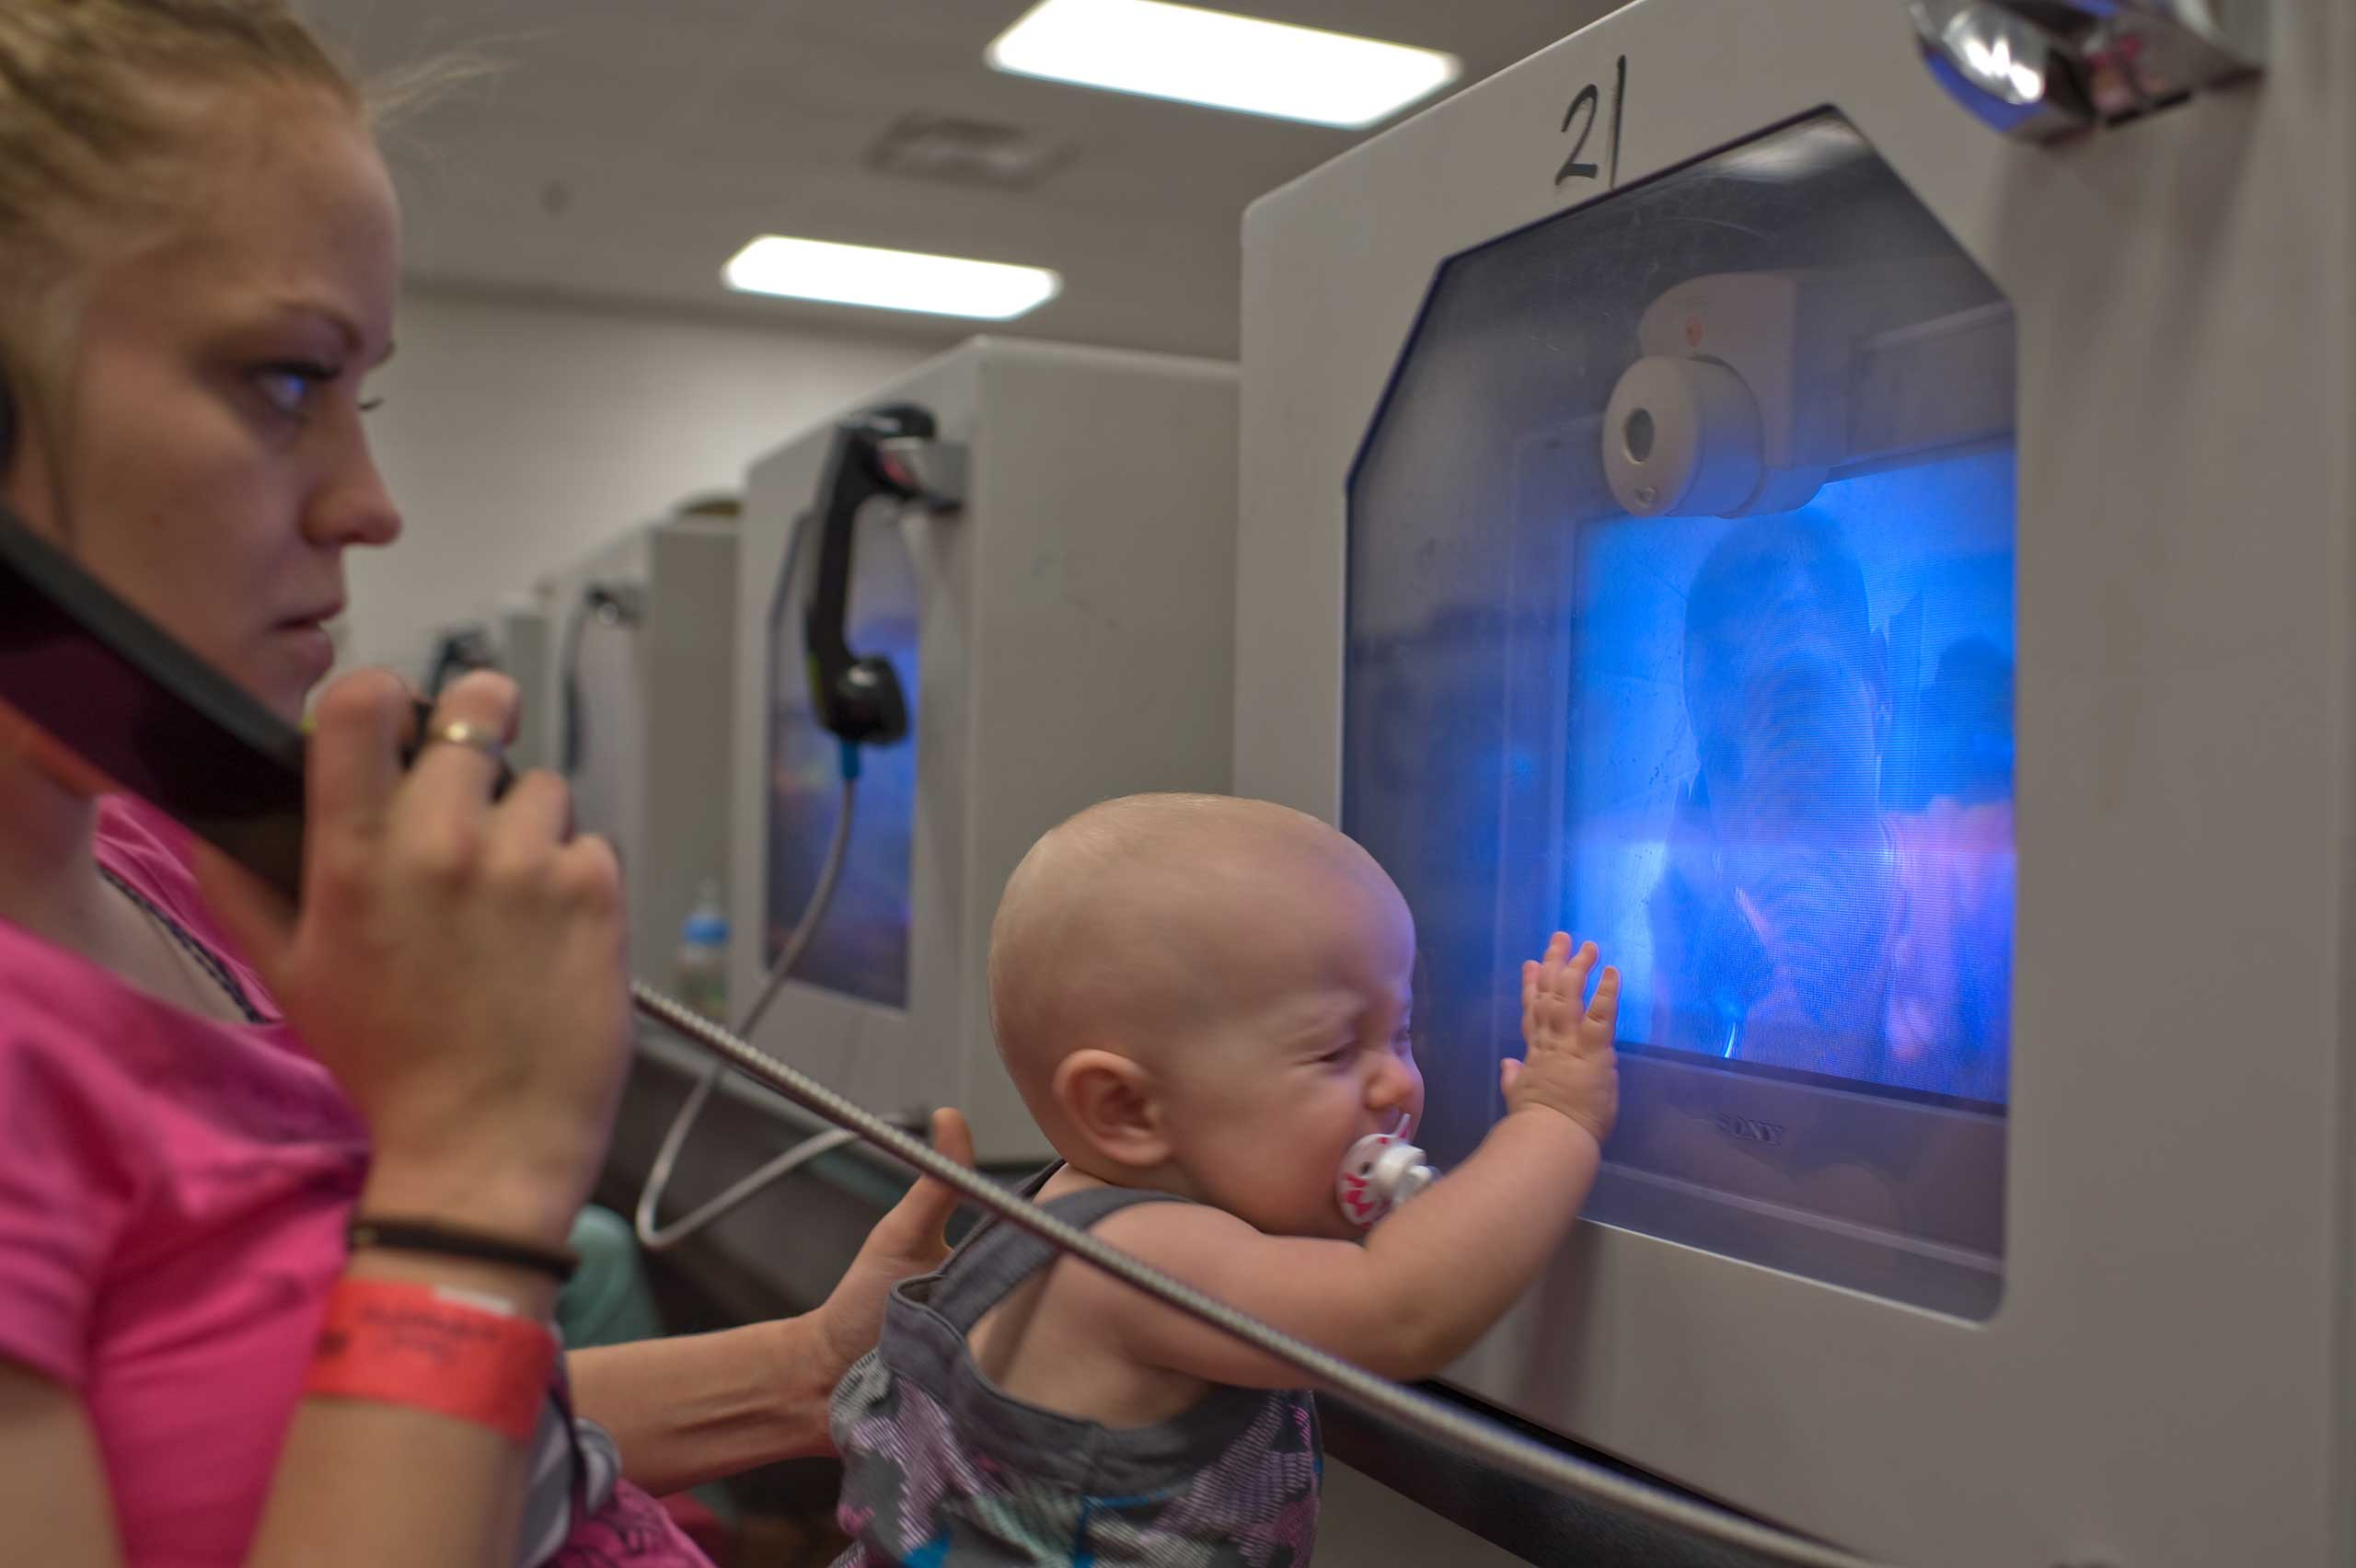 Felicia and their 10-month-old daughter Lily see David through video visitation.